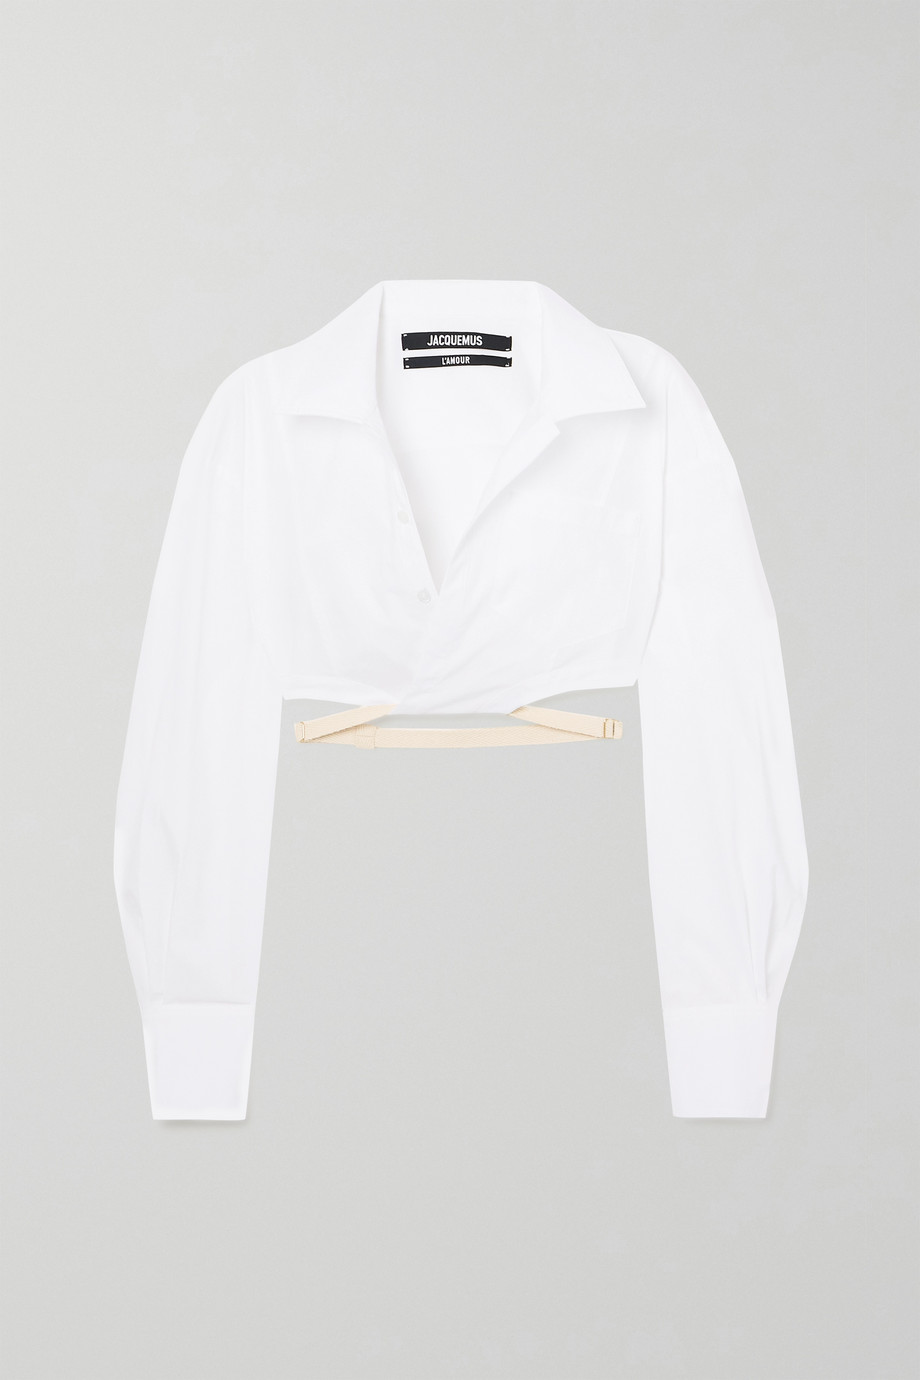 Jacquemus Laurier cropped buckled cotton shirt